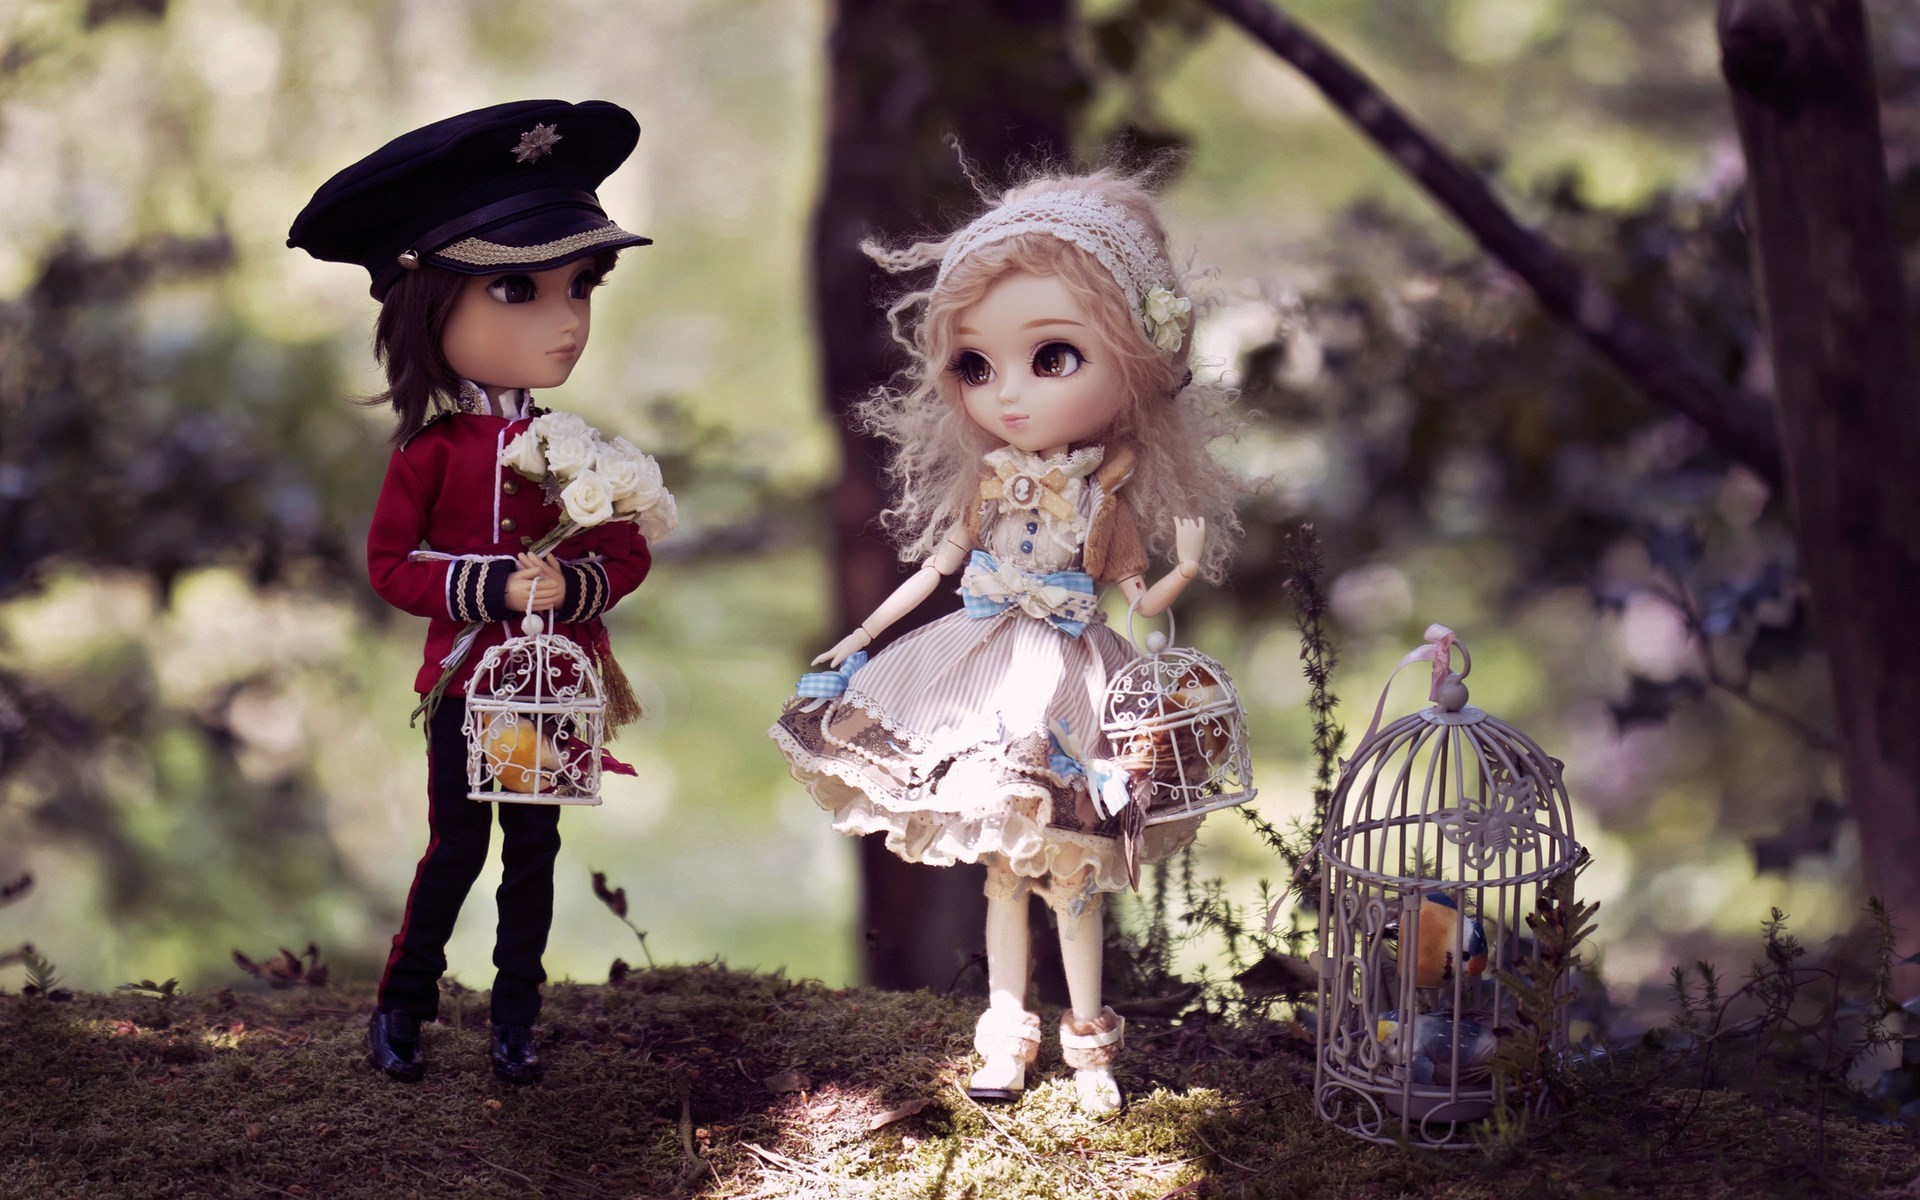 Hd Wallpaper Emo Love couple : Dolls HD Wallpapers - WallpaperSafari